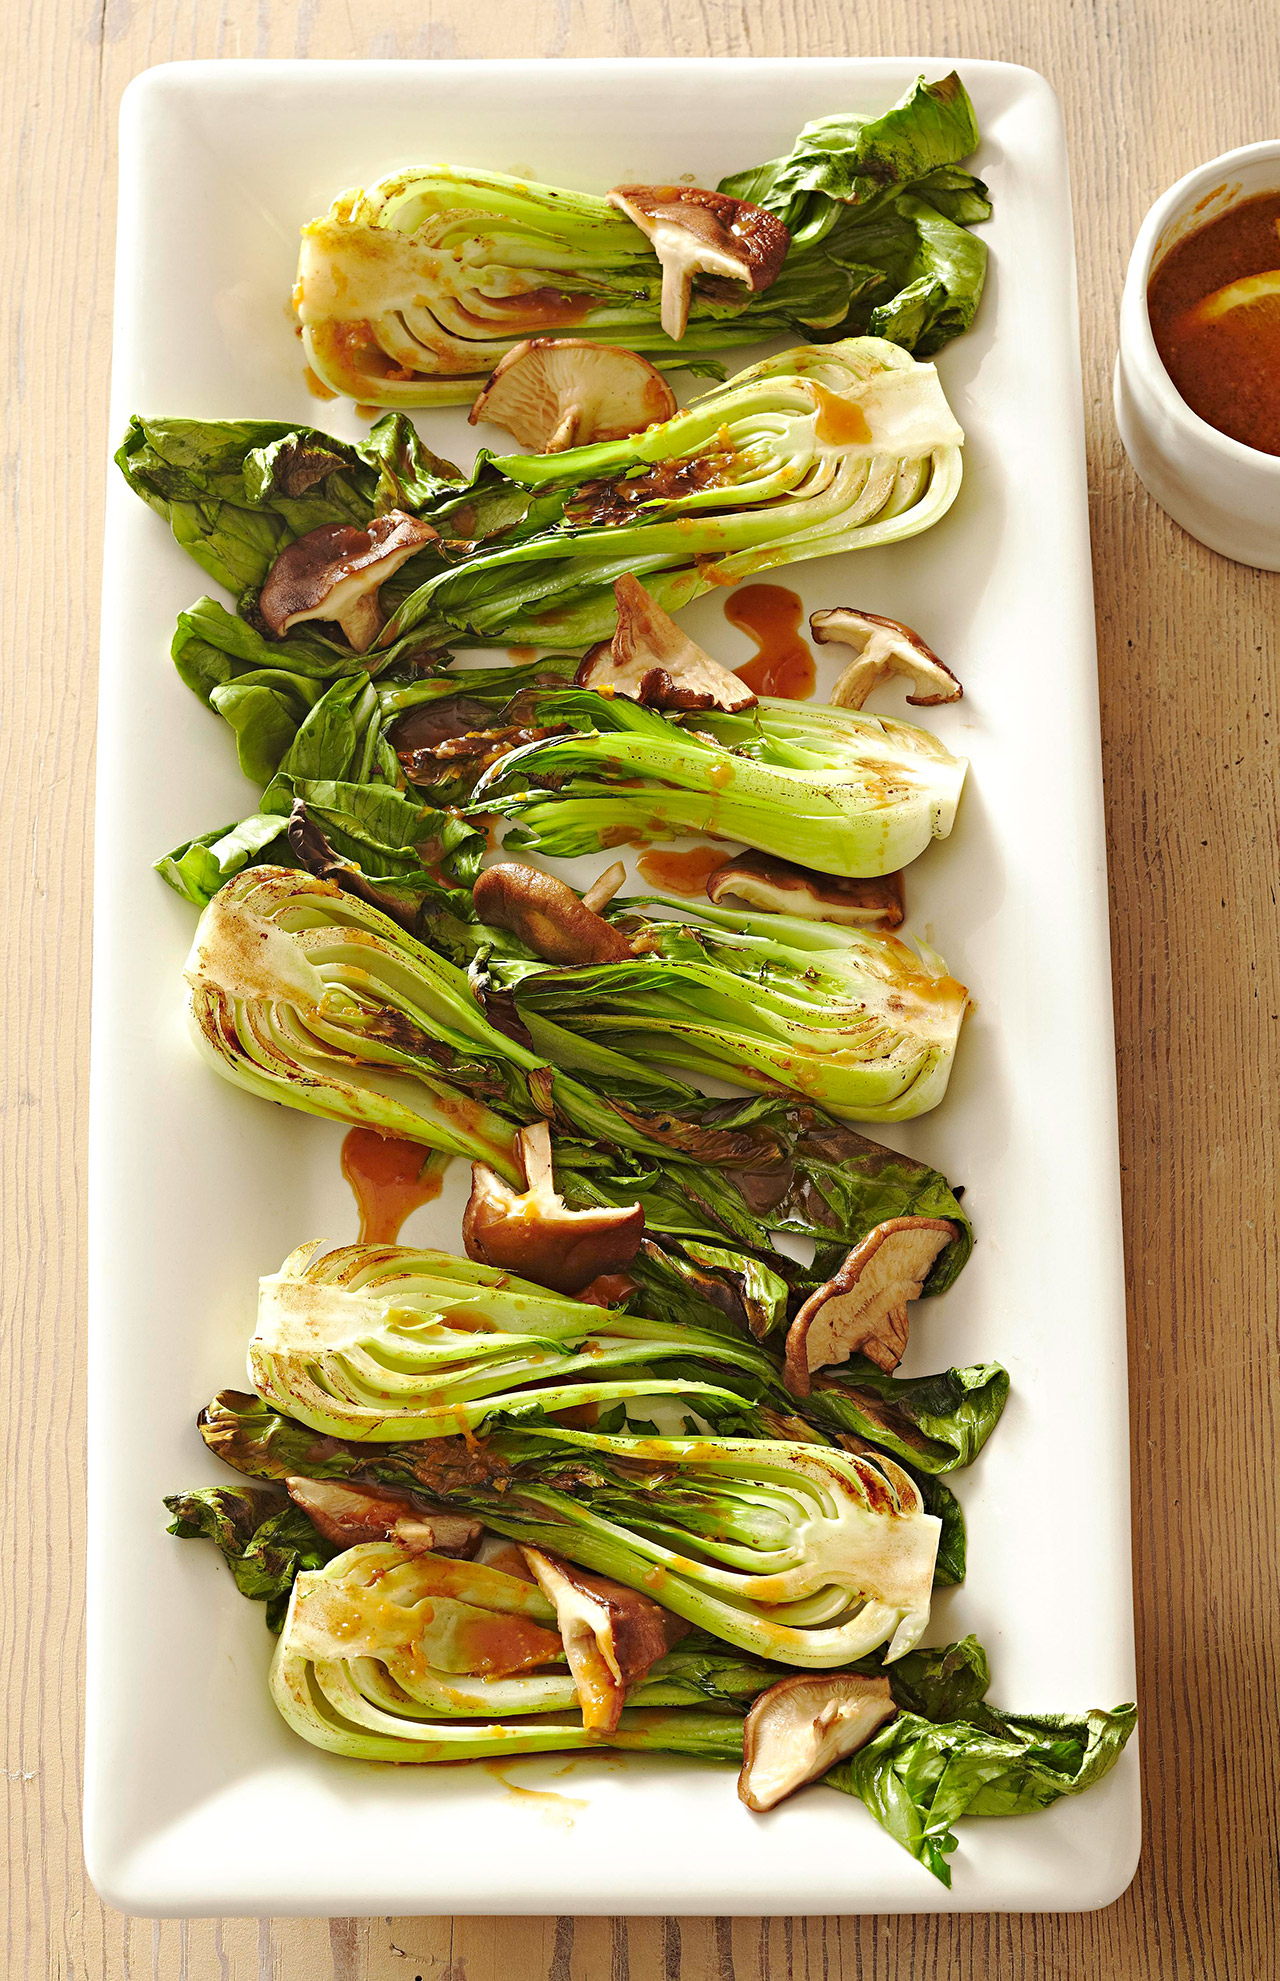 Broiled Bok Choy with Miso Sauce